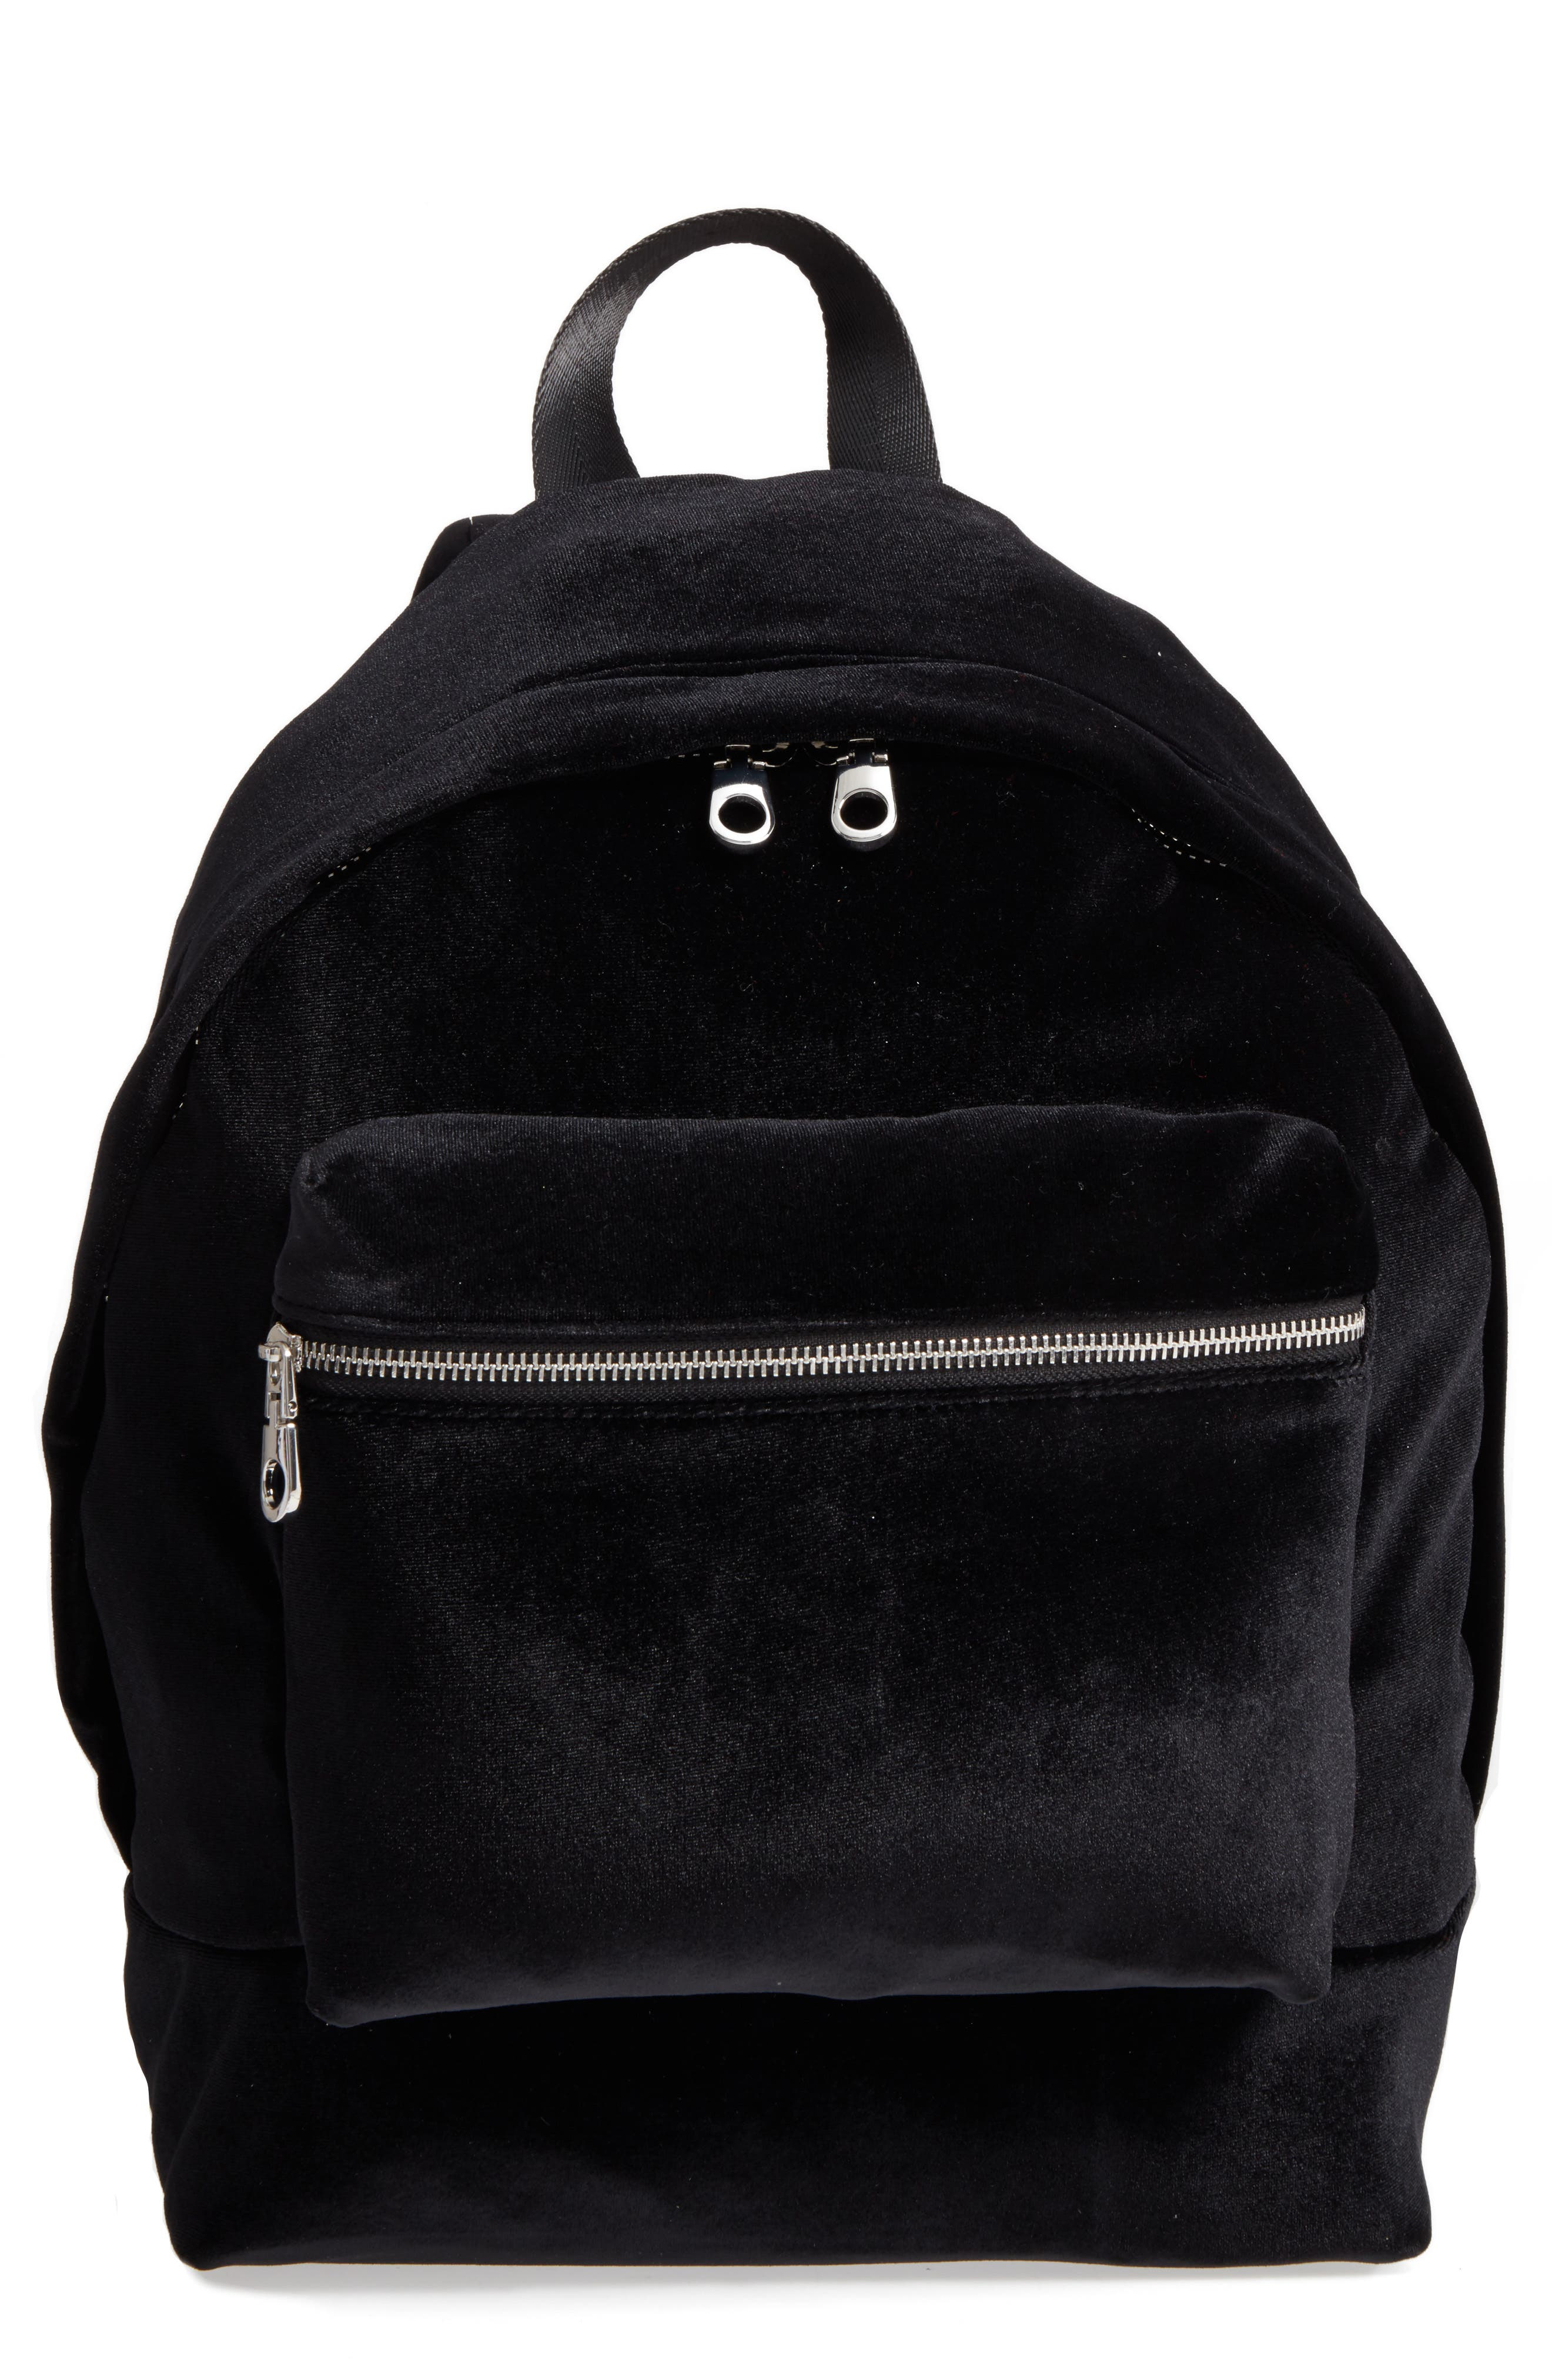 Velvet Backpack,                         Main,                         color, Black